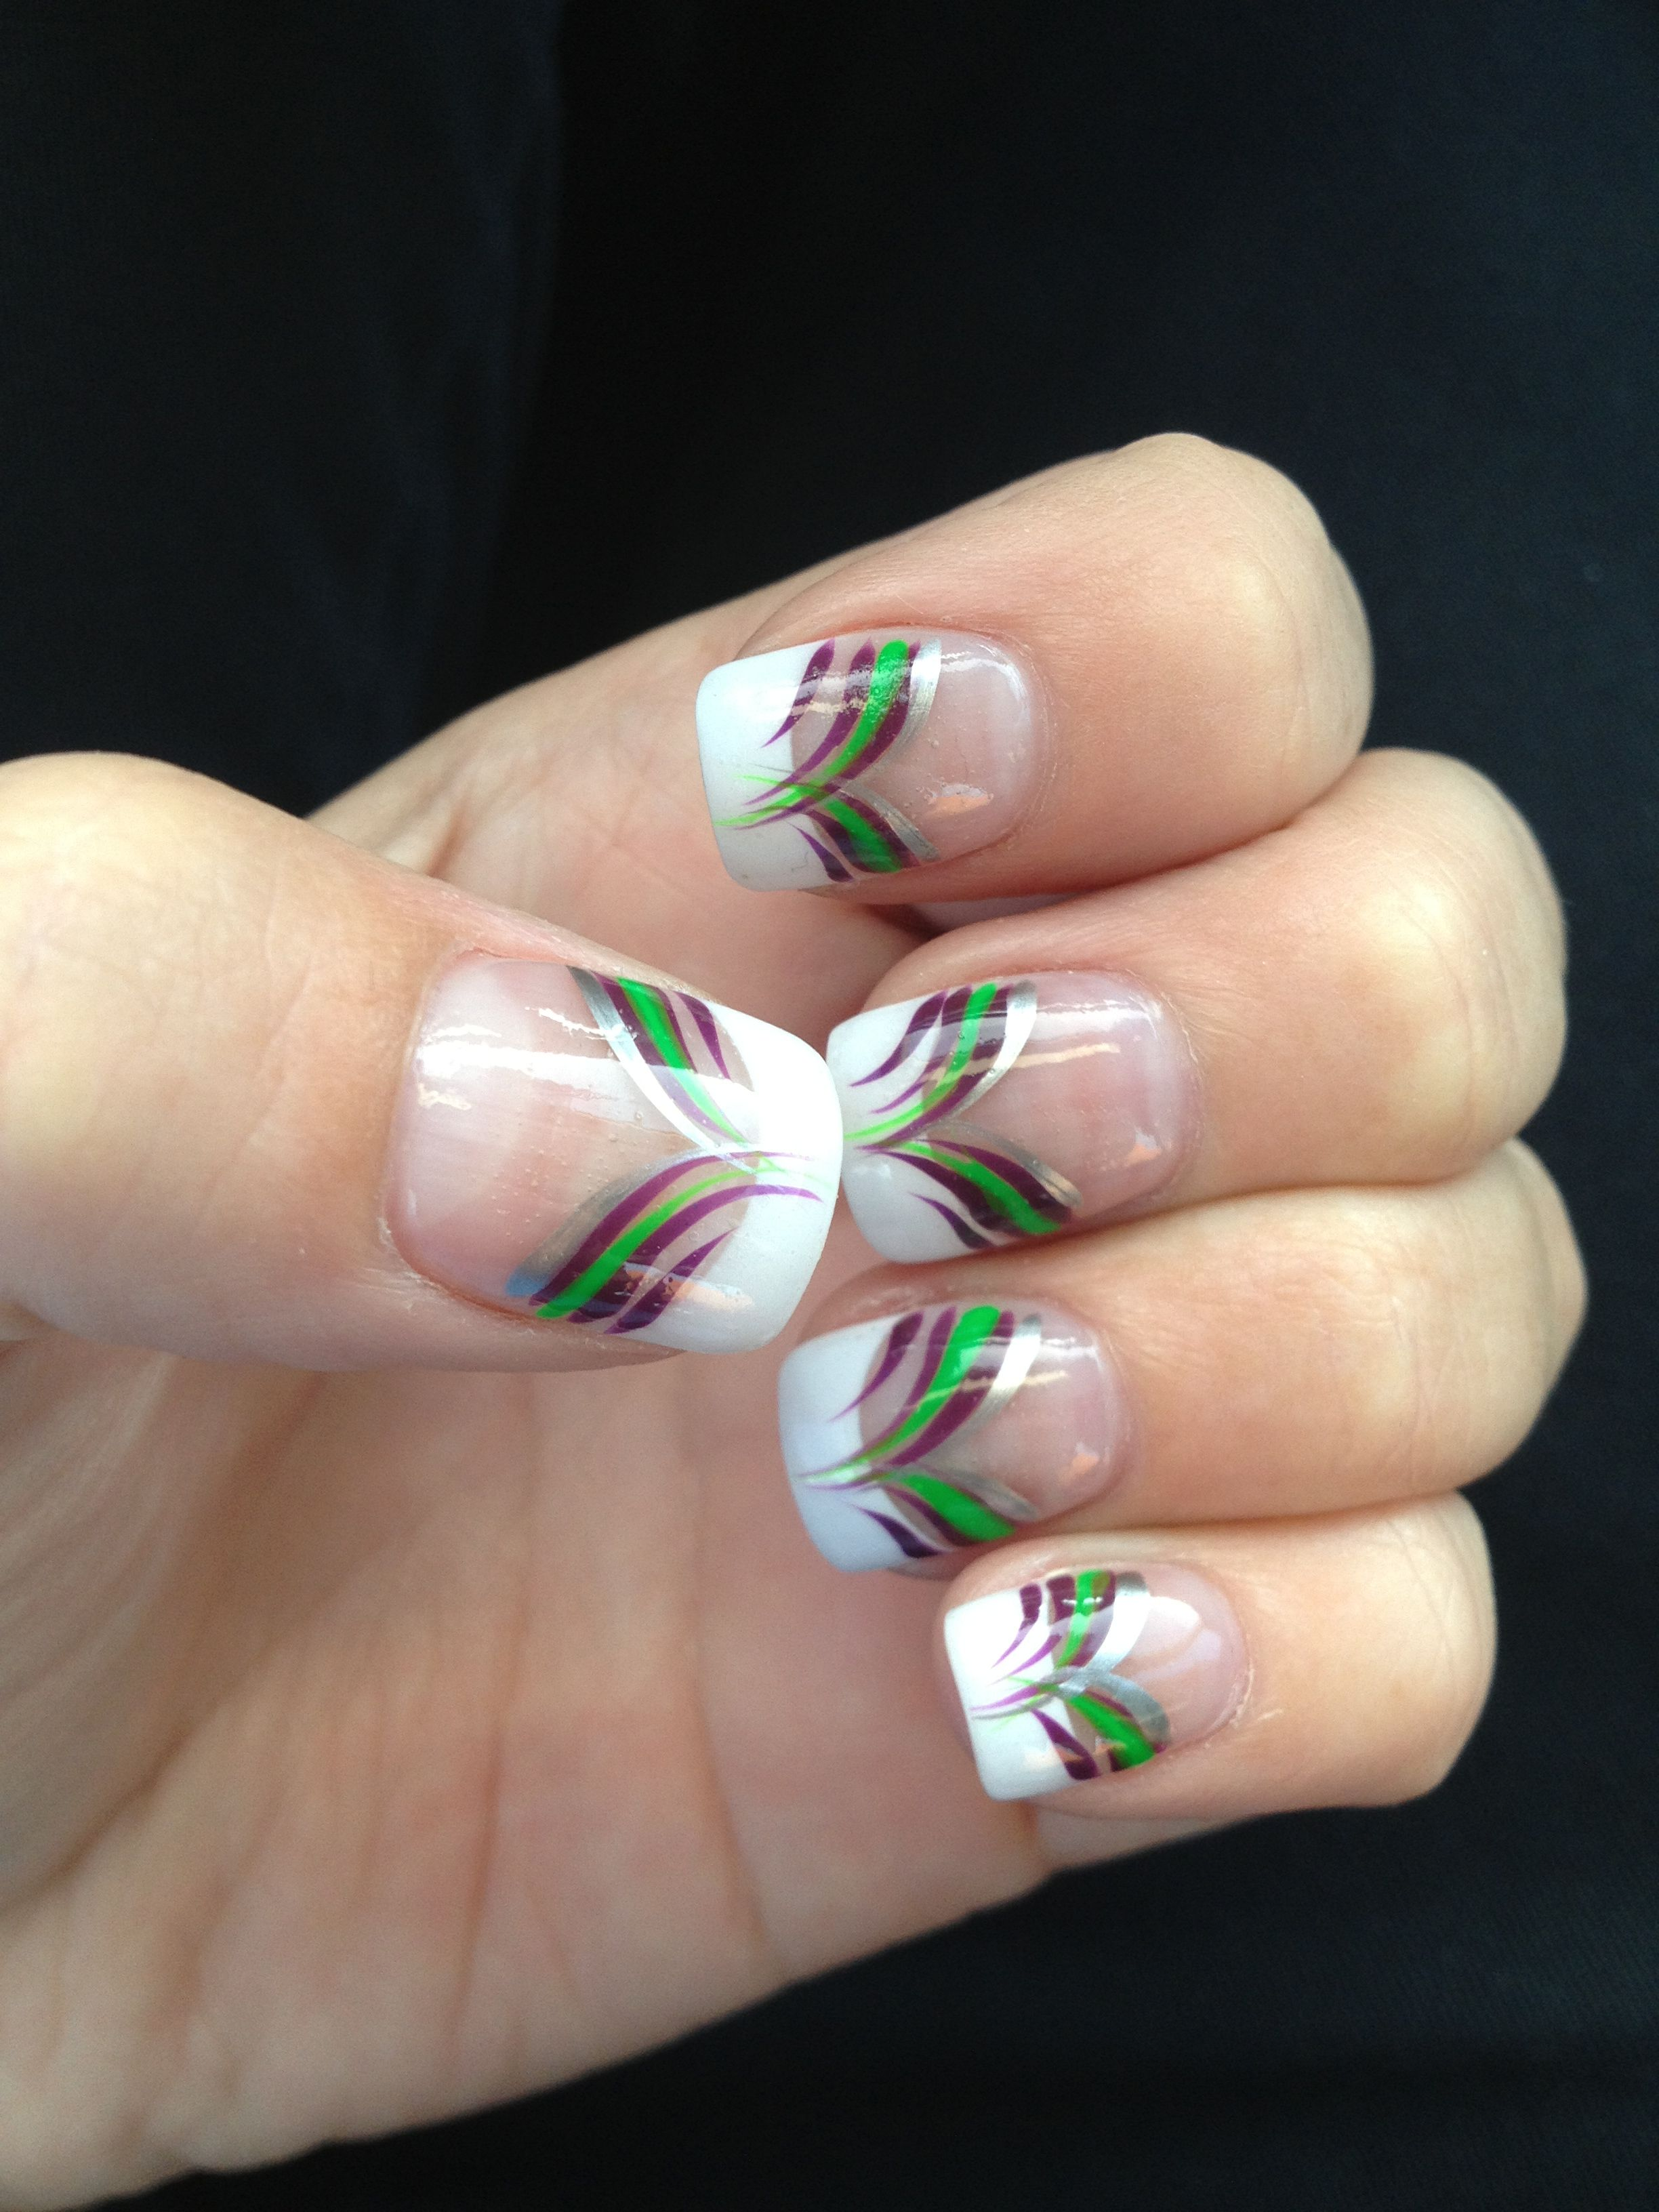 Joker inspired nails , green and purple ;)